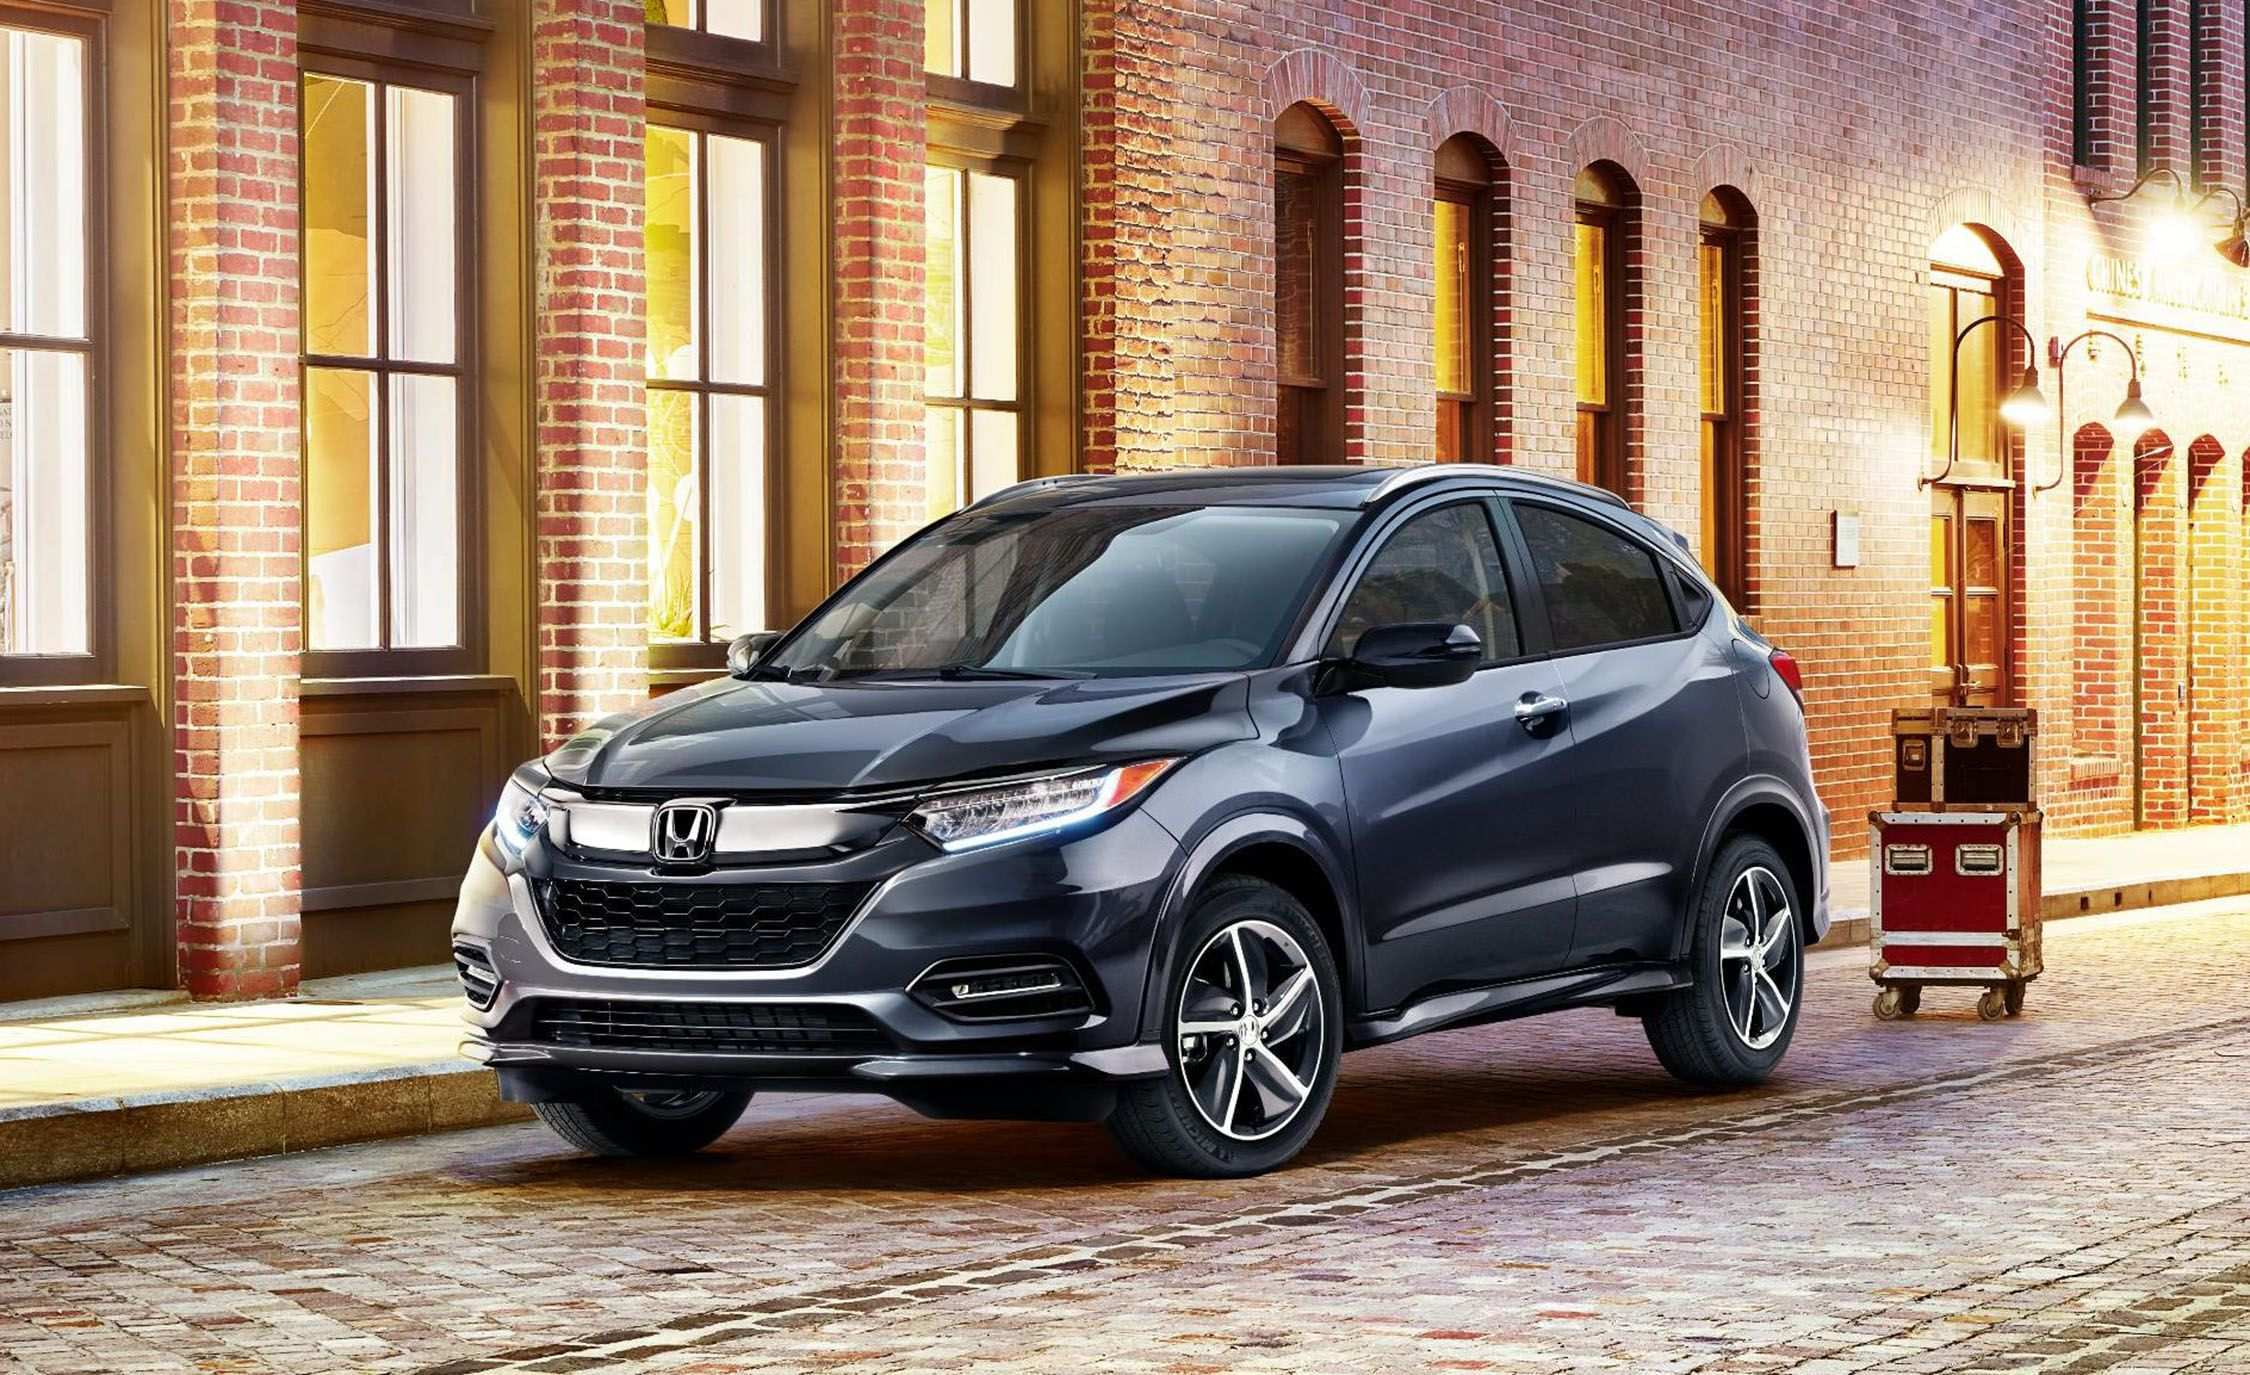 63 Great The Honda Hrv 2019 Canada Spy Shoot Redesign for The Honda Hrv 2019 Canada Spy Shoot